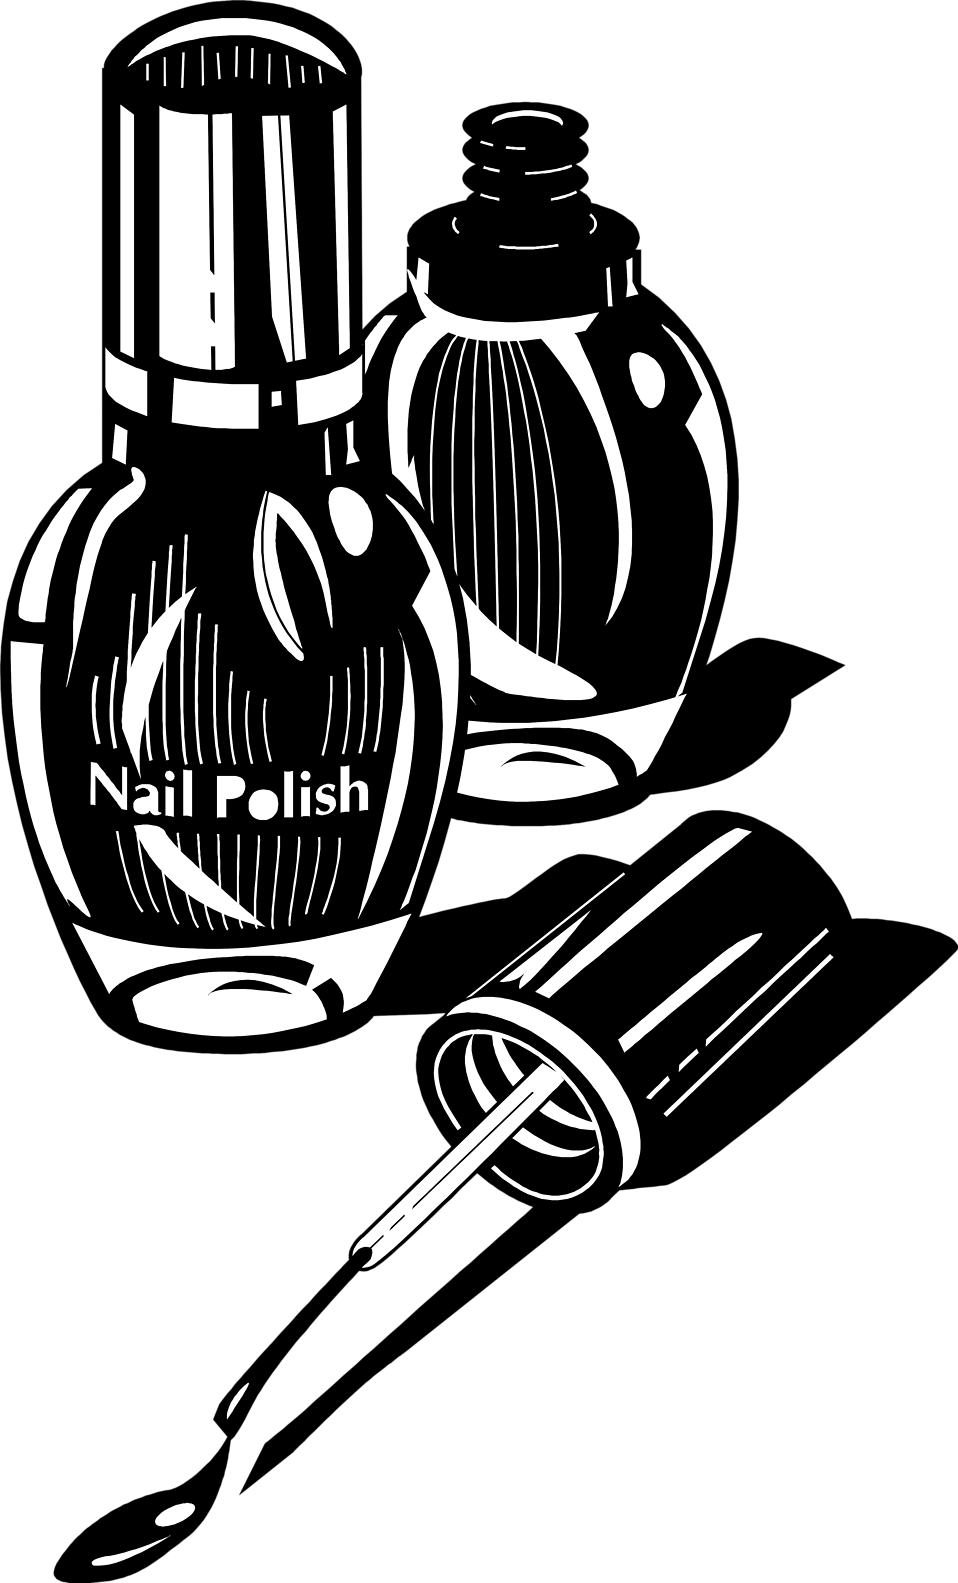 Illustration of Nail Polish